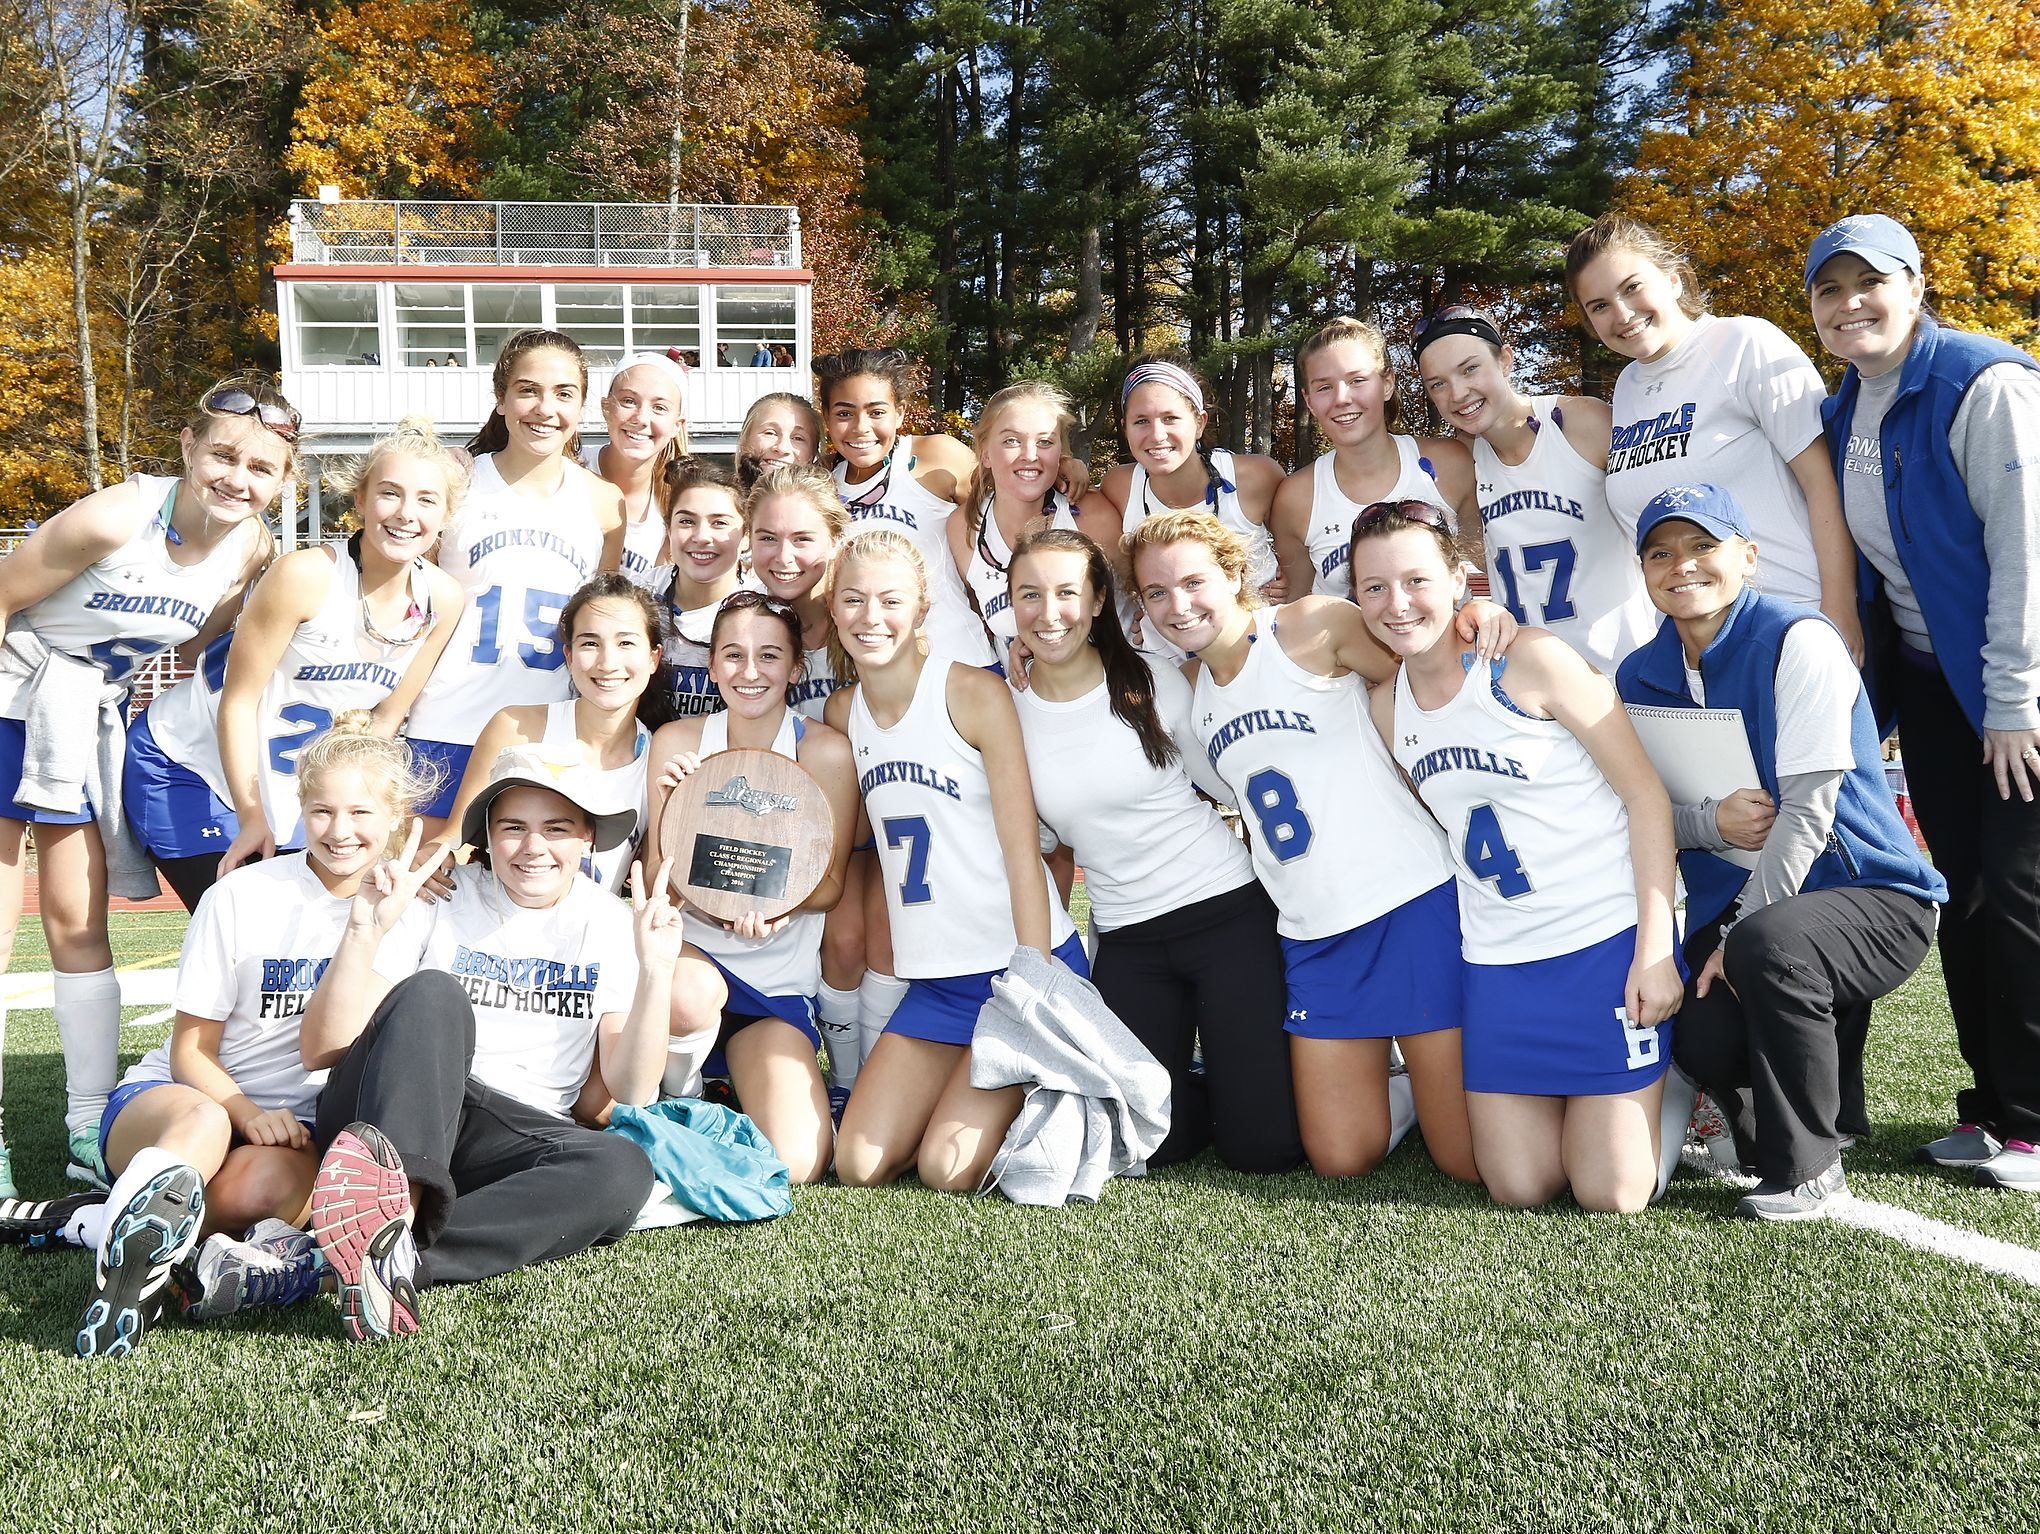 Bronxville celebrates their 2-0 win over Roundout Valley in the Class C regional championship field hockey game at Valhalla High School on Saturday, November 5, 2016.